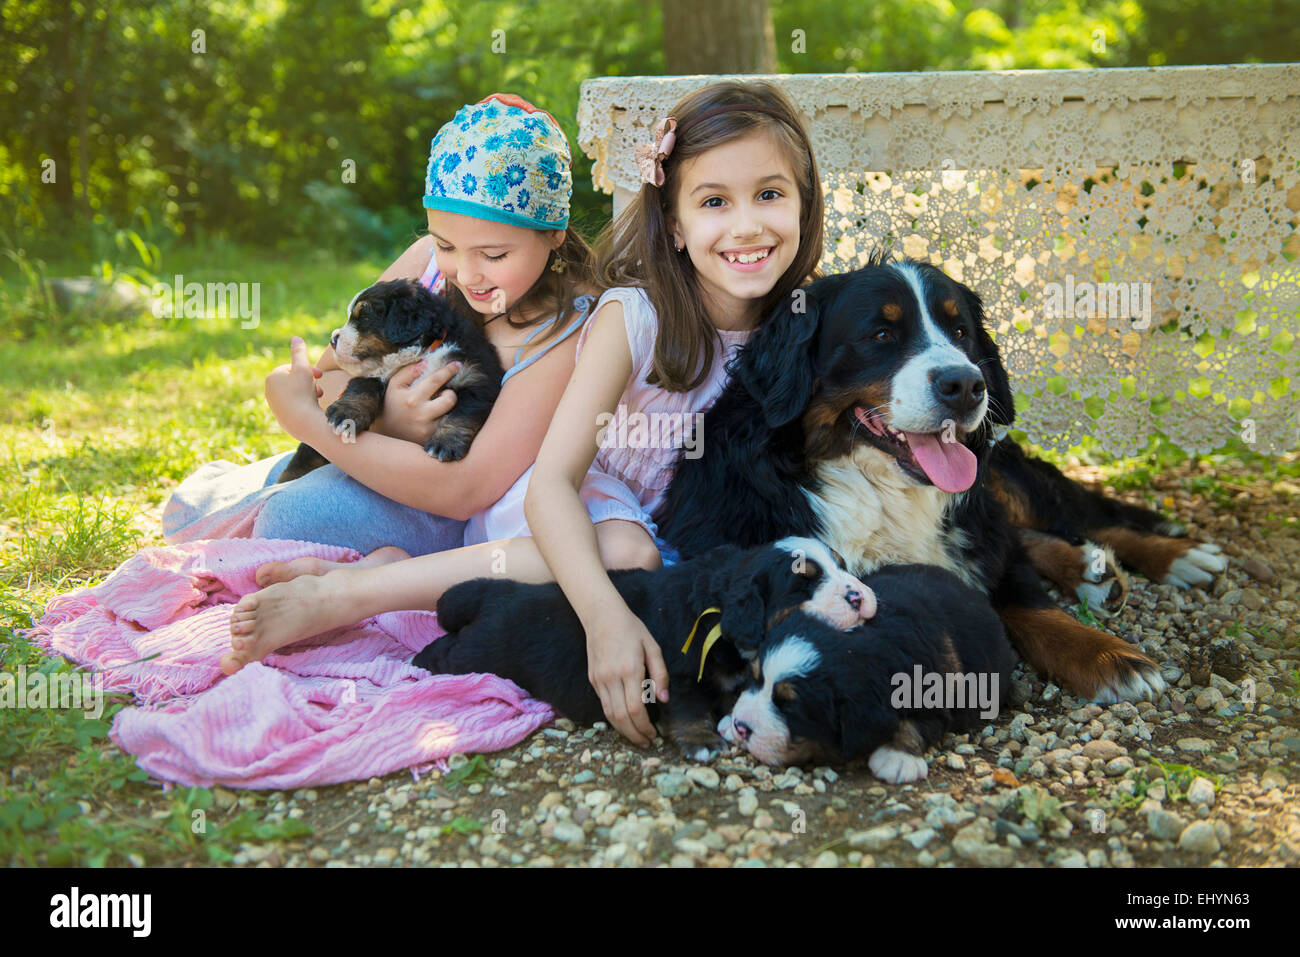 Two girls sitting in garden with a dog and puppies Stock Photo